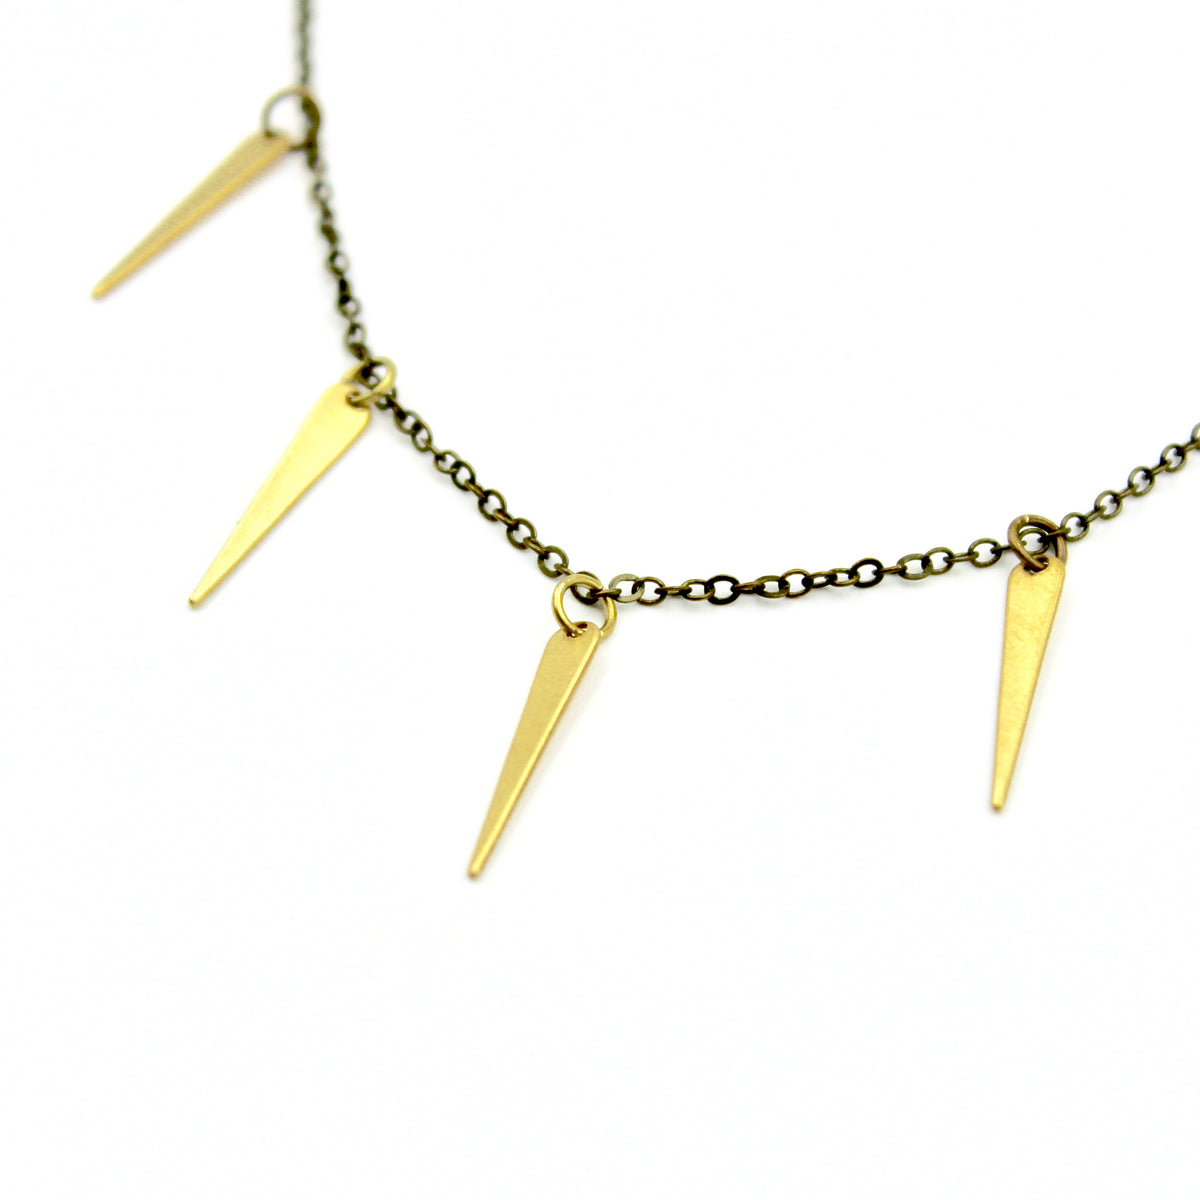 Sprinkle Necklace - Brass Spike